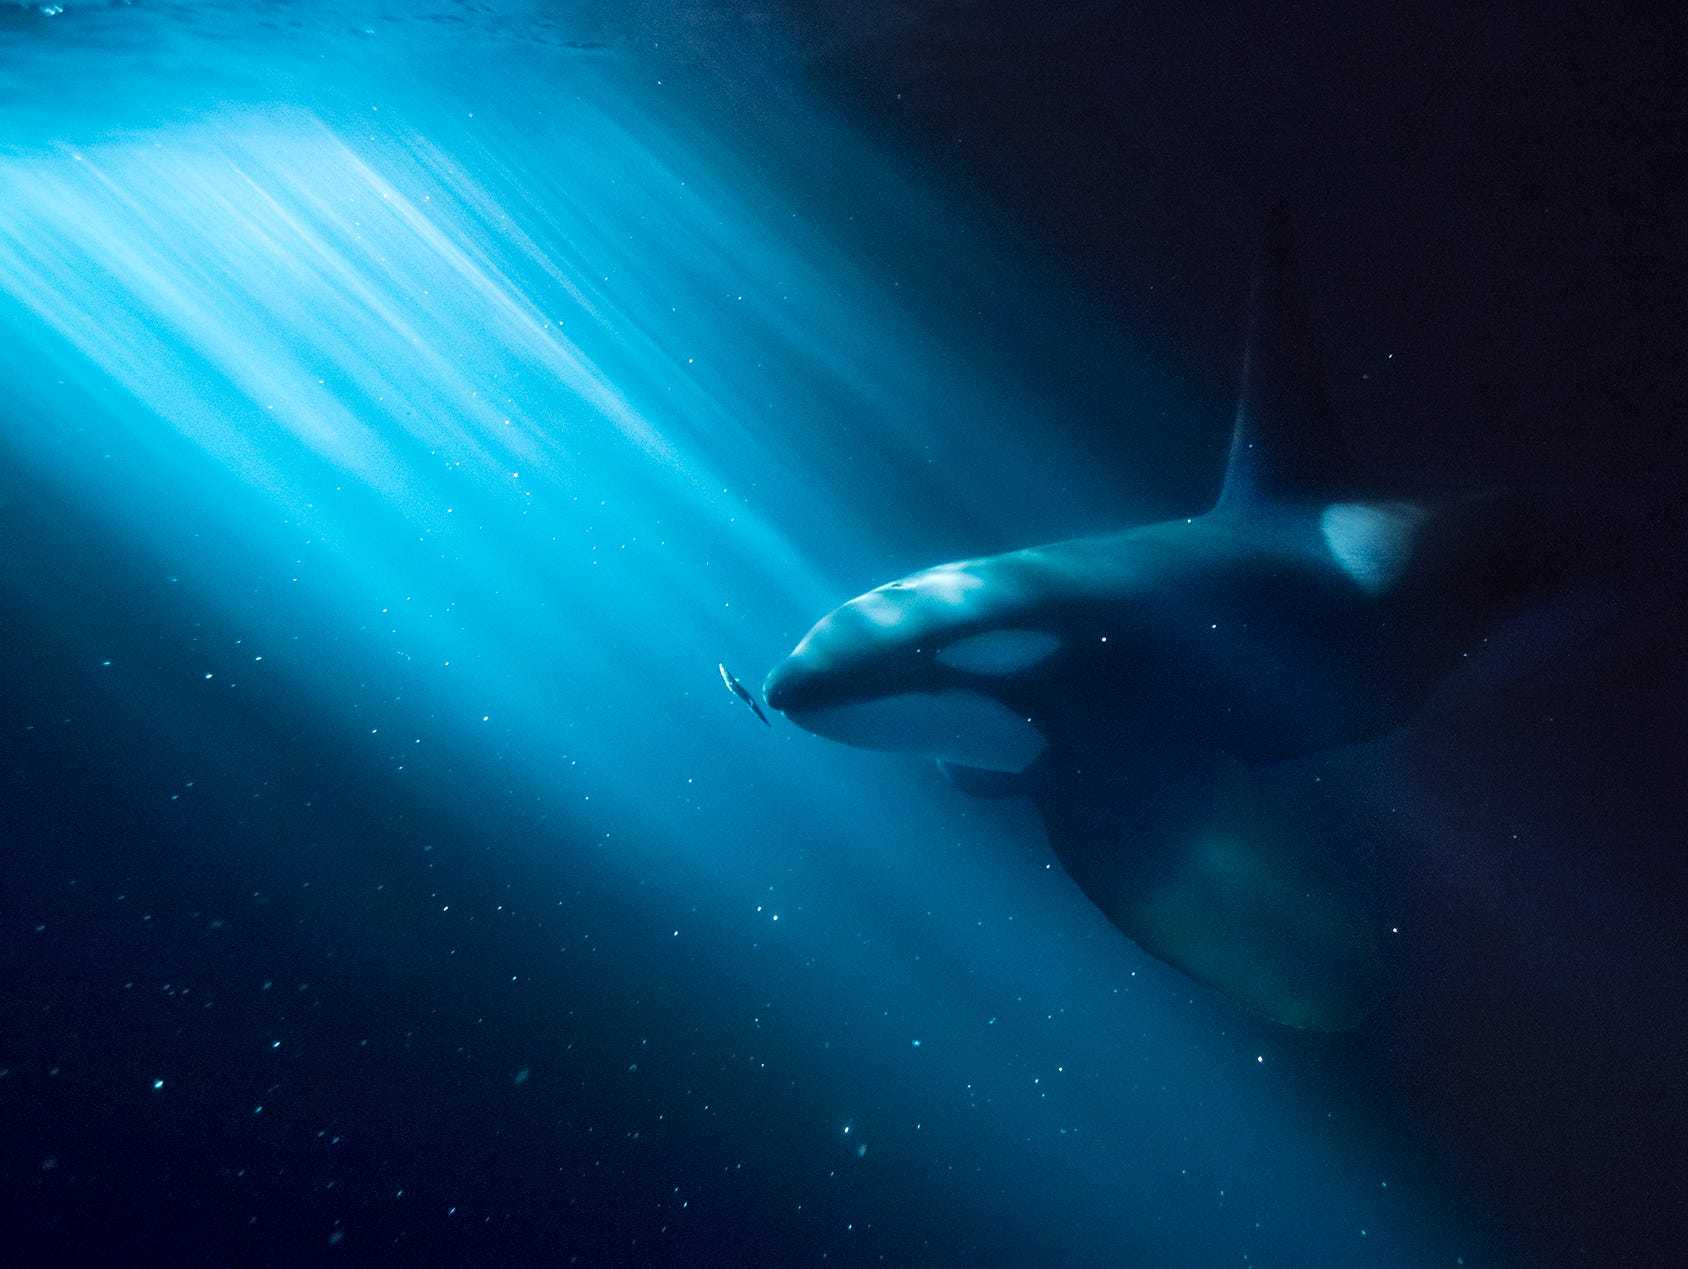 A killer whale feeding in the light beam from a fishing boat during the polar night outside Tromsø in Northern Norway